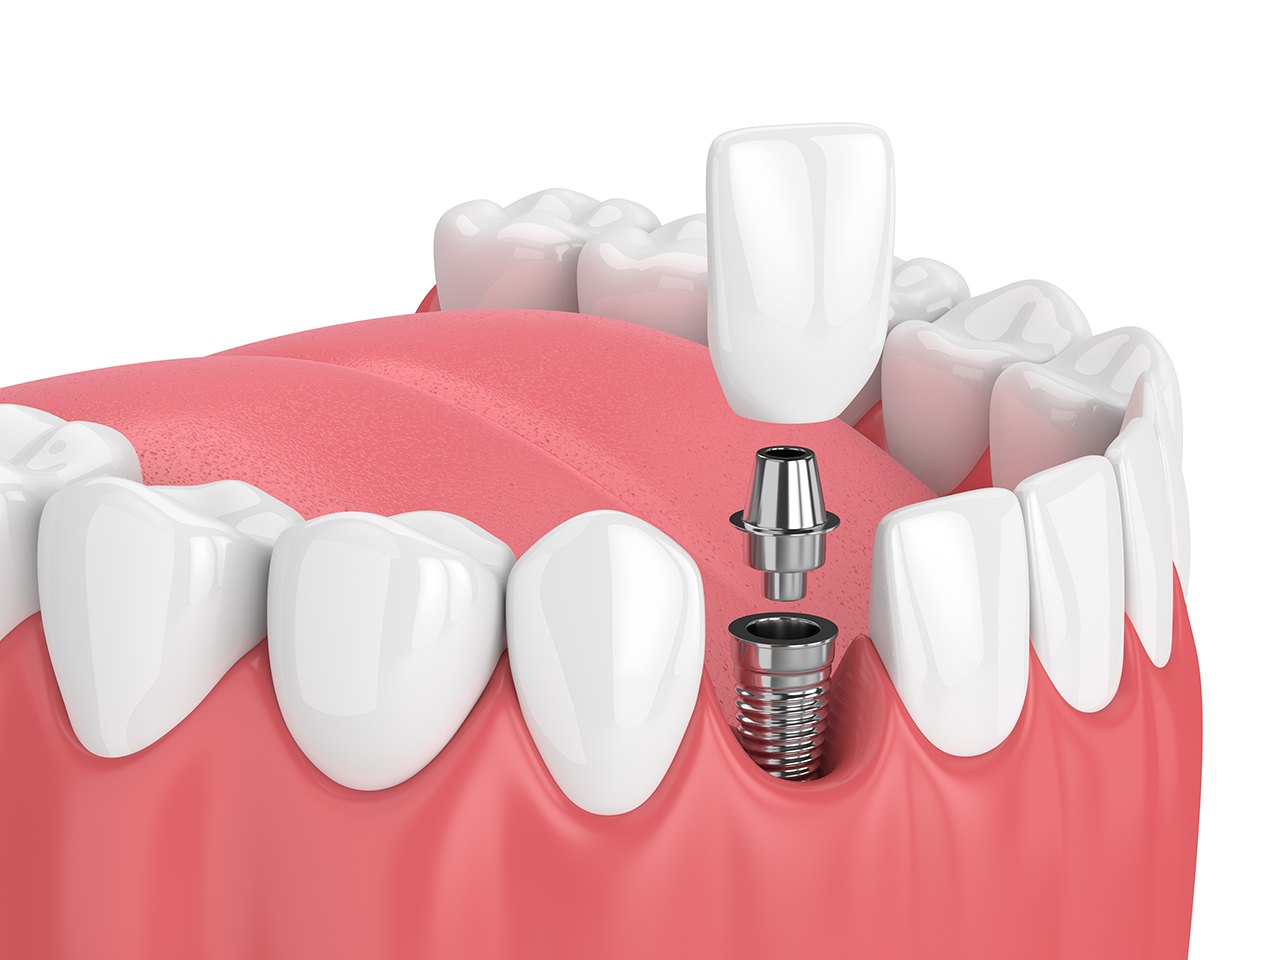 Picture of Dental Implant